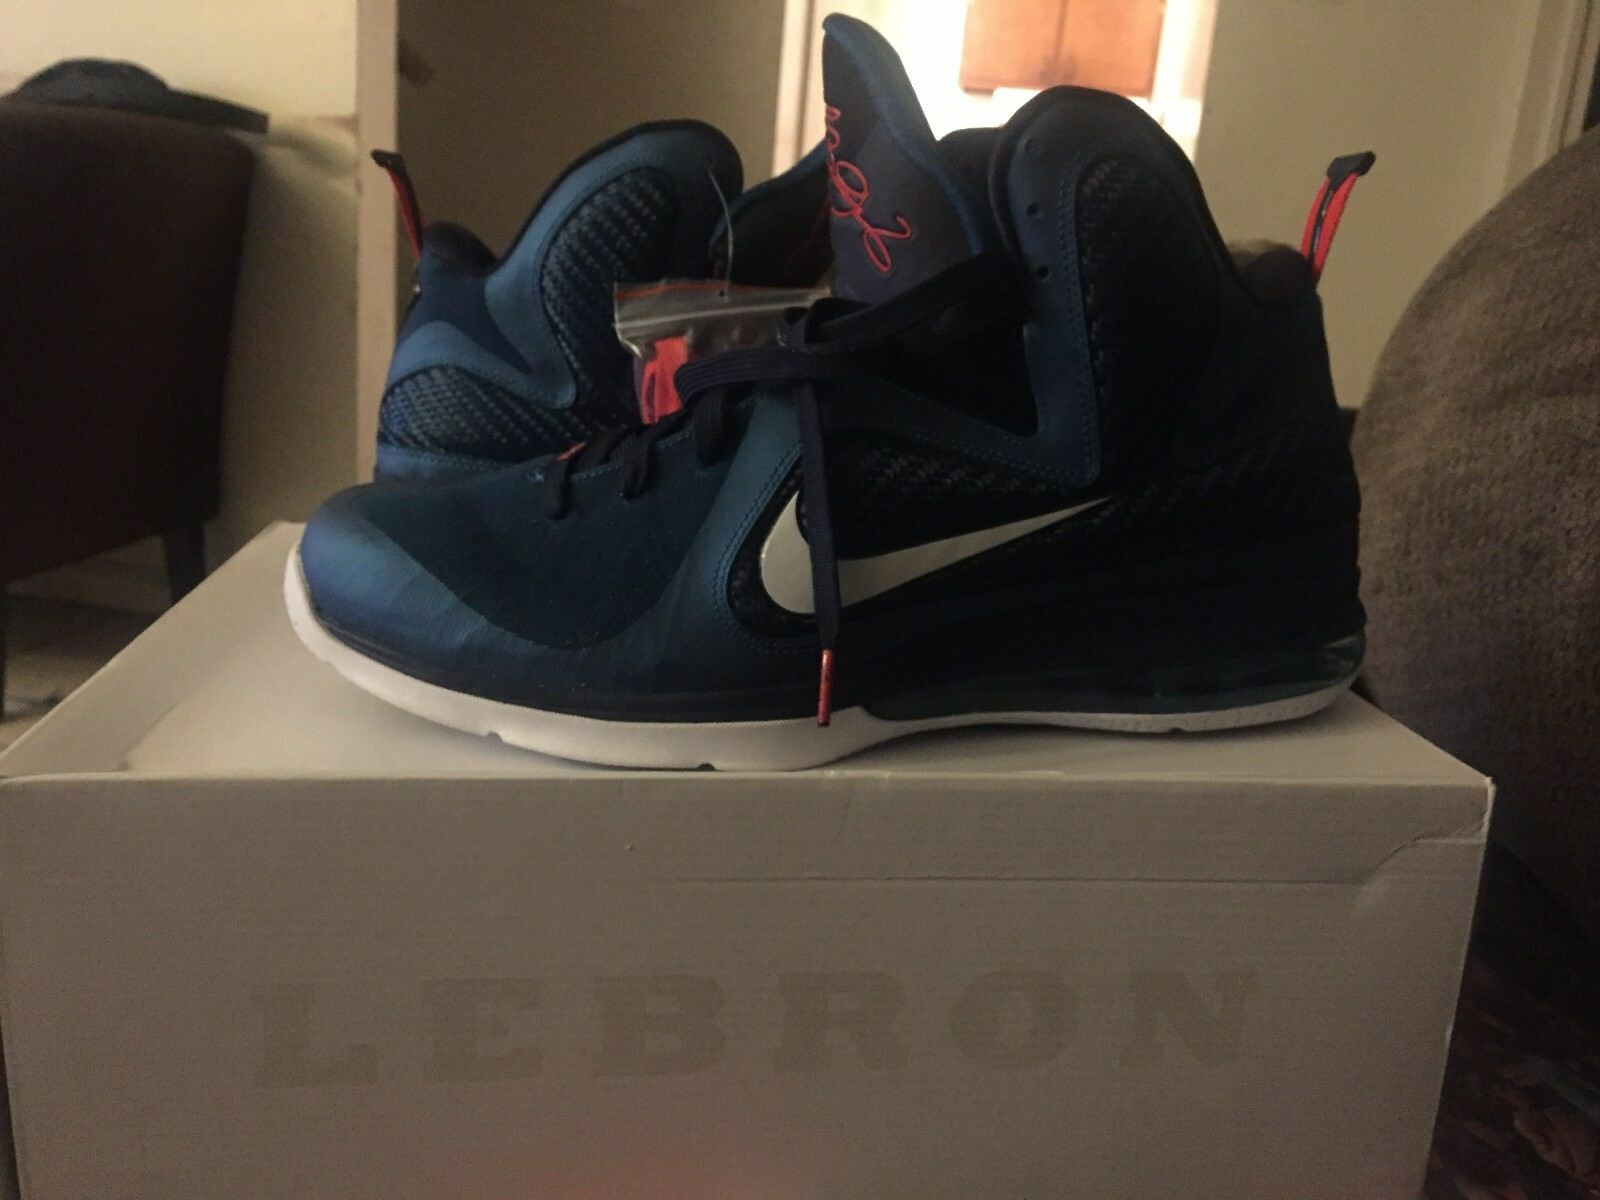 Nike Air Lebron IX 9 Swingman Sneakers Men's Size 14 with box DS (Dead Stock)